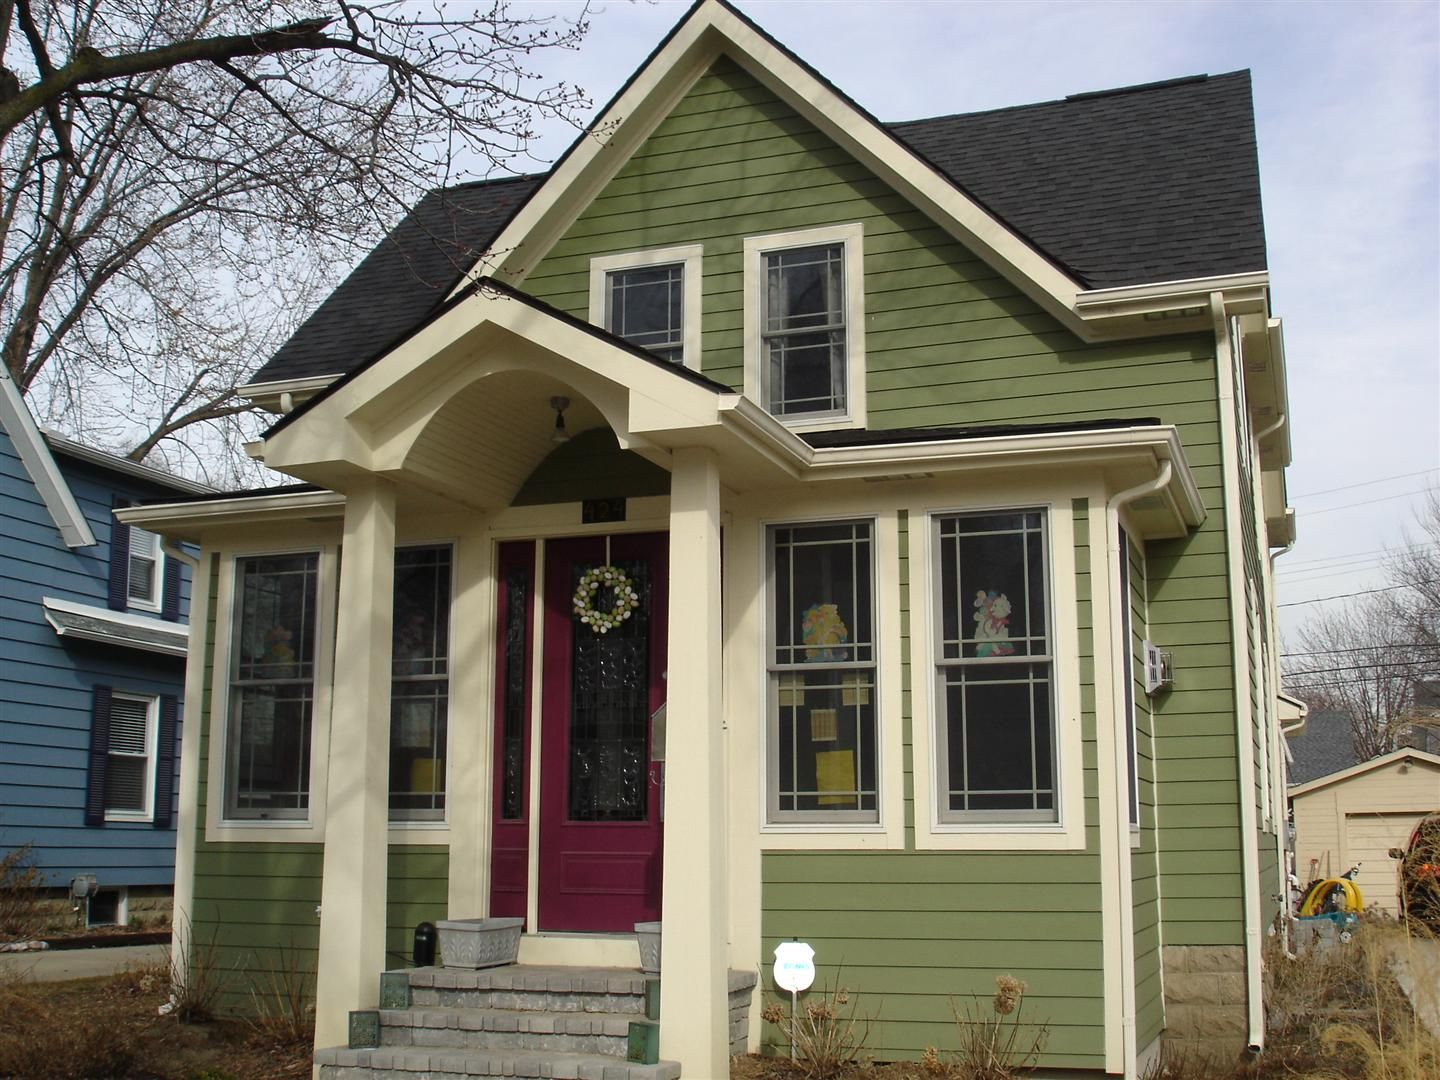 8 popular home upgrades and how much they cost steel - Average cost to paint exterior house trim ...